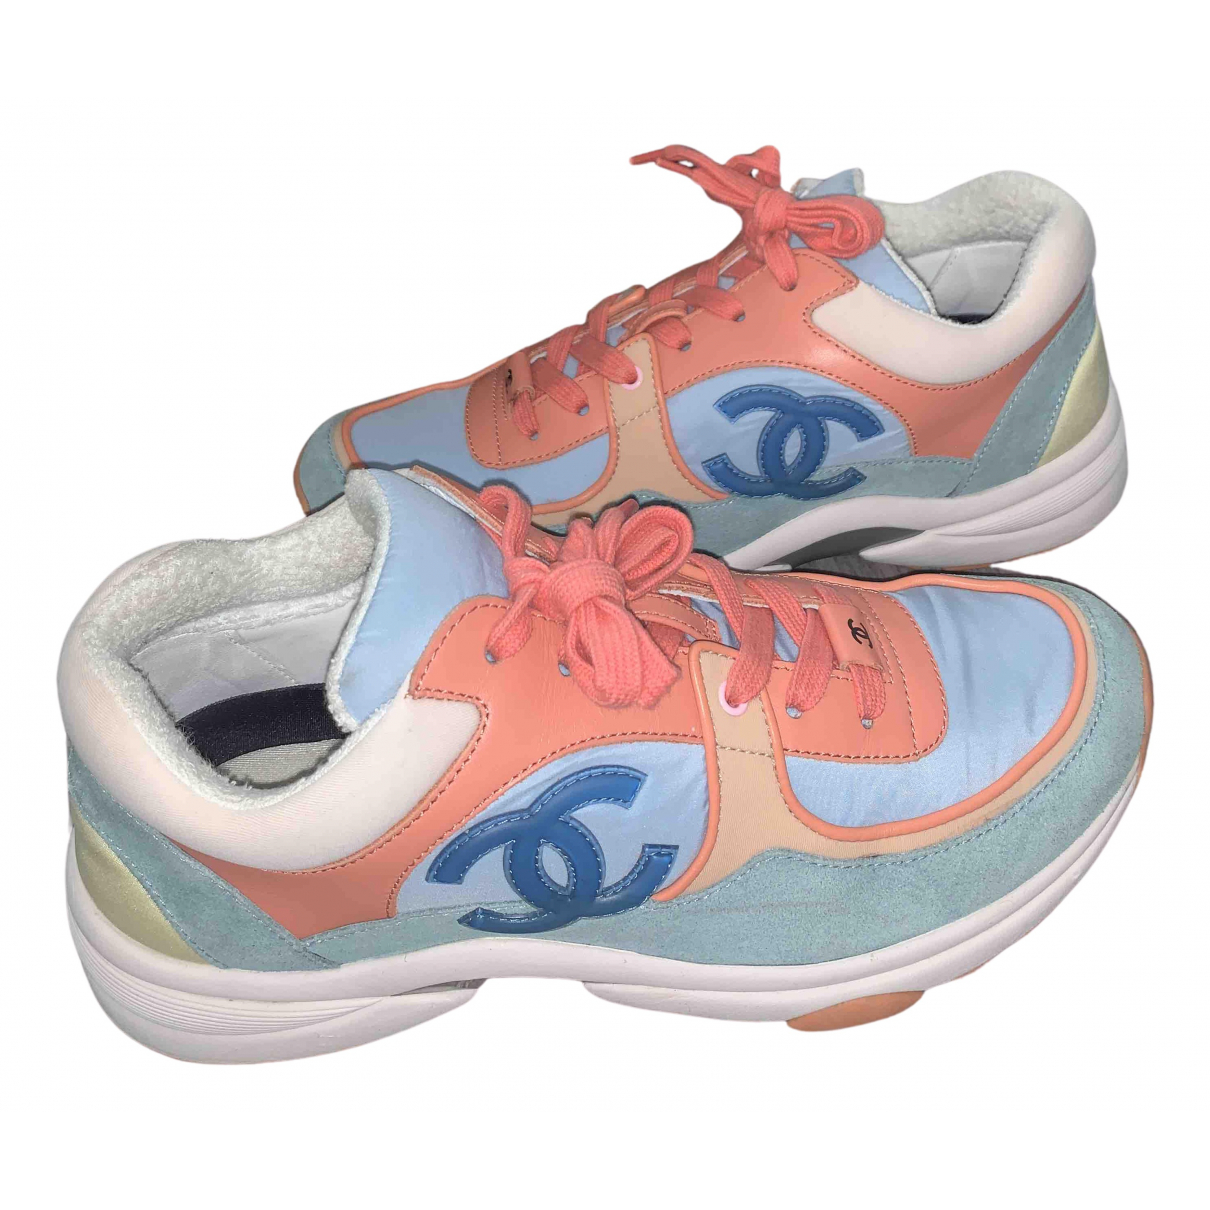 Chanel N Multicolour Pony-style calfskin Trainers for Women 38 EU